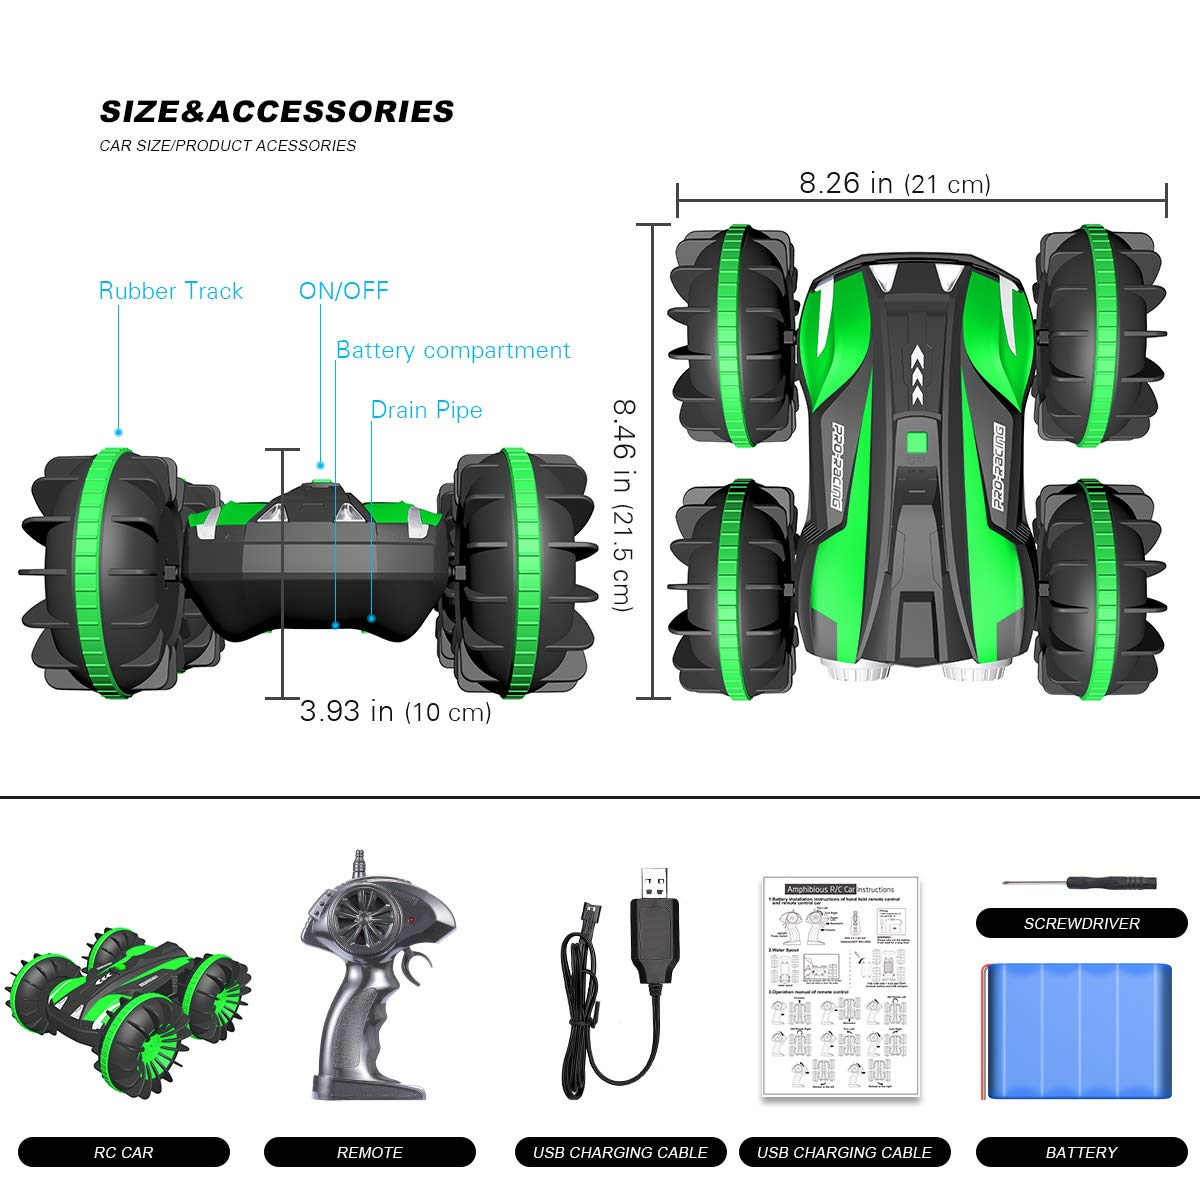 Remote Control Car Boat Truck 4WD 6CH 2.4Ghz Land Water 2 in 1 RC Toy Car Multifunction Waterproof Stunt 1:16 Remote Vehicle with Rotate 360 Electric Car Toy by FREE TO FLY by FREE TO FLY (Image #3)